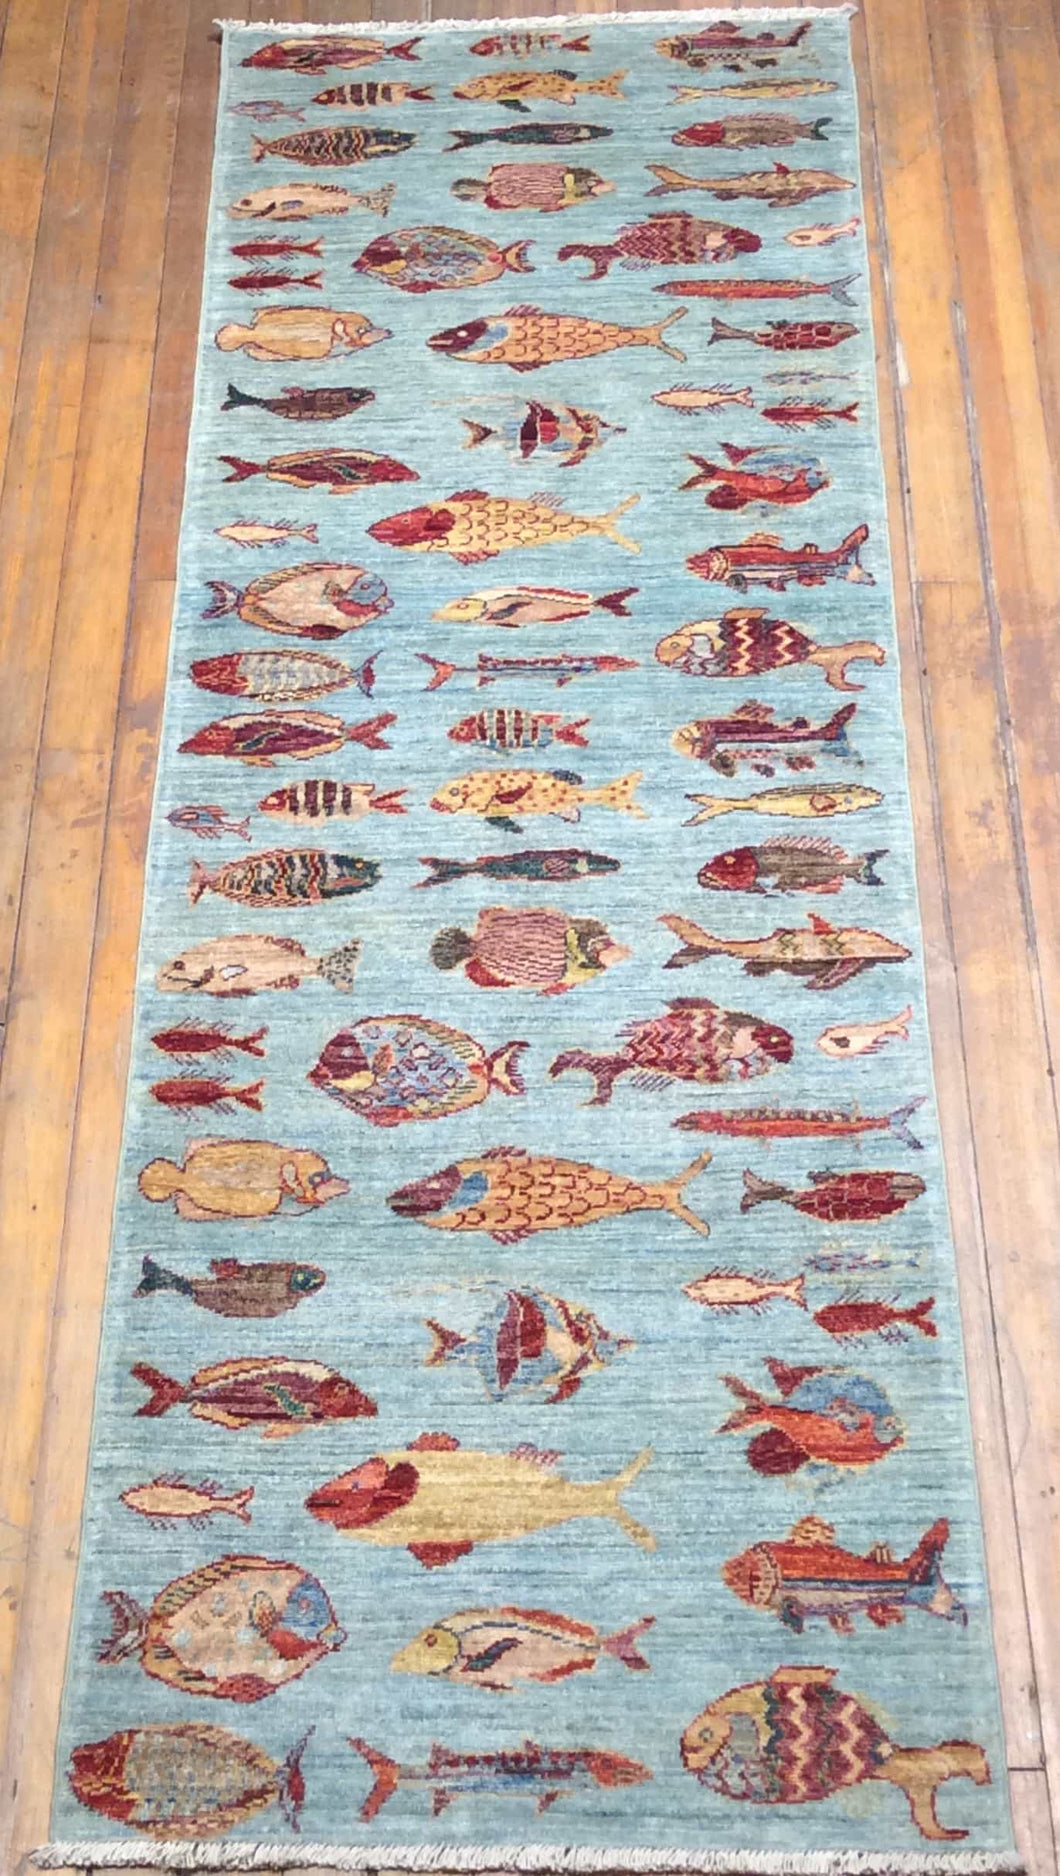 Fish Arts and Crafts Rug. 8' x 2'.8